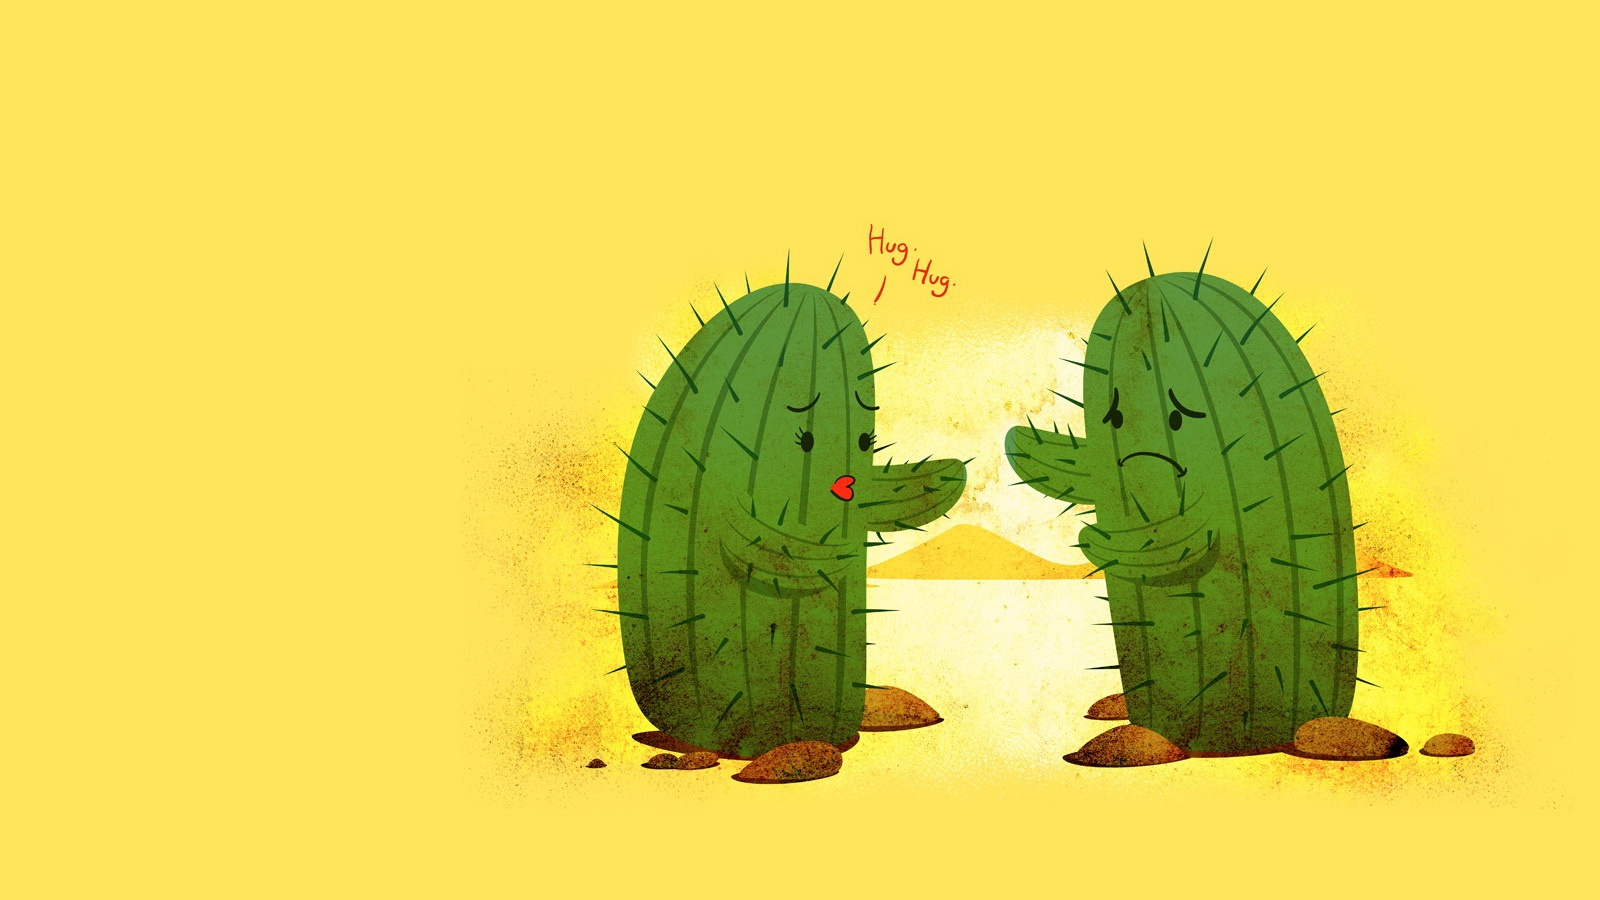 Bleach Girl Hug Cactus Download Free Photos